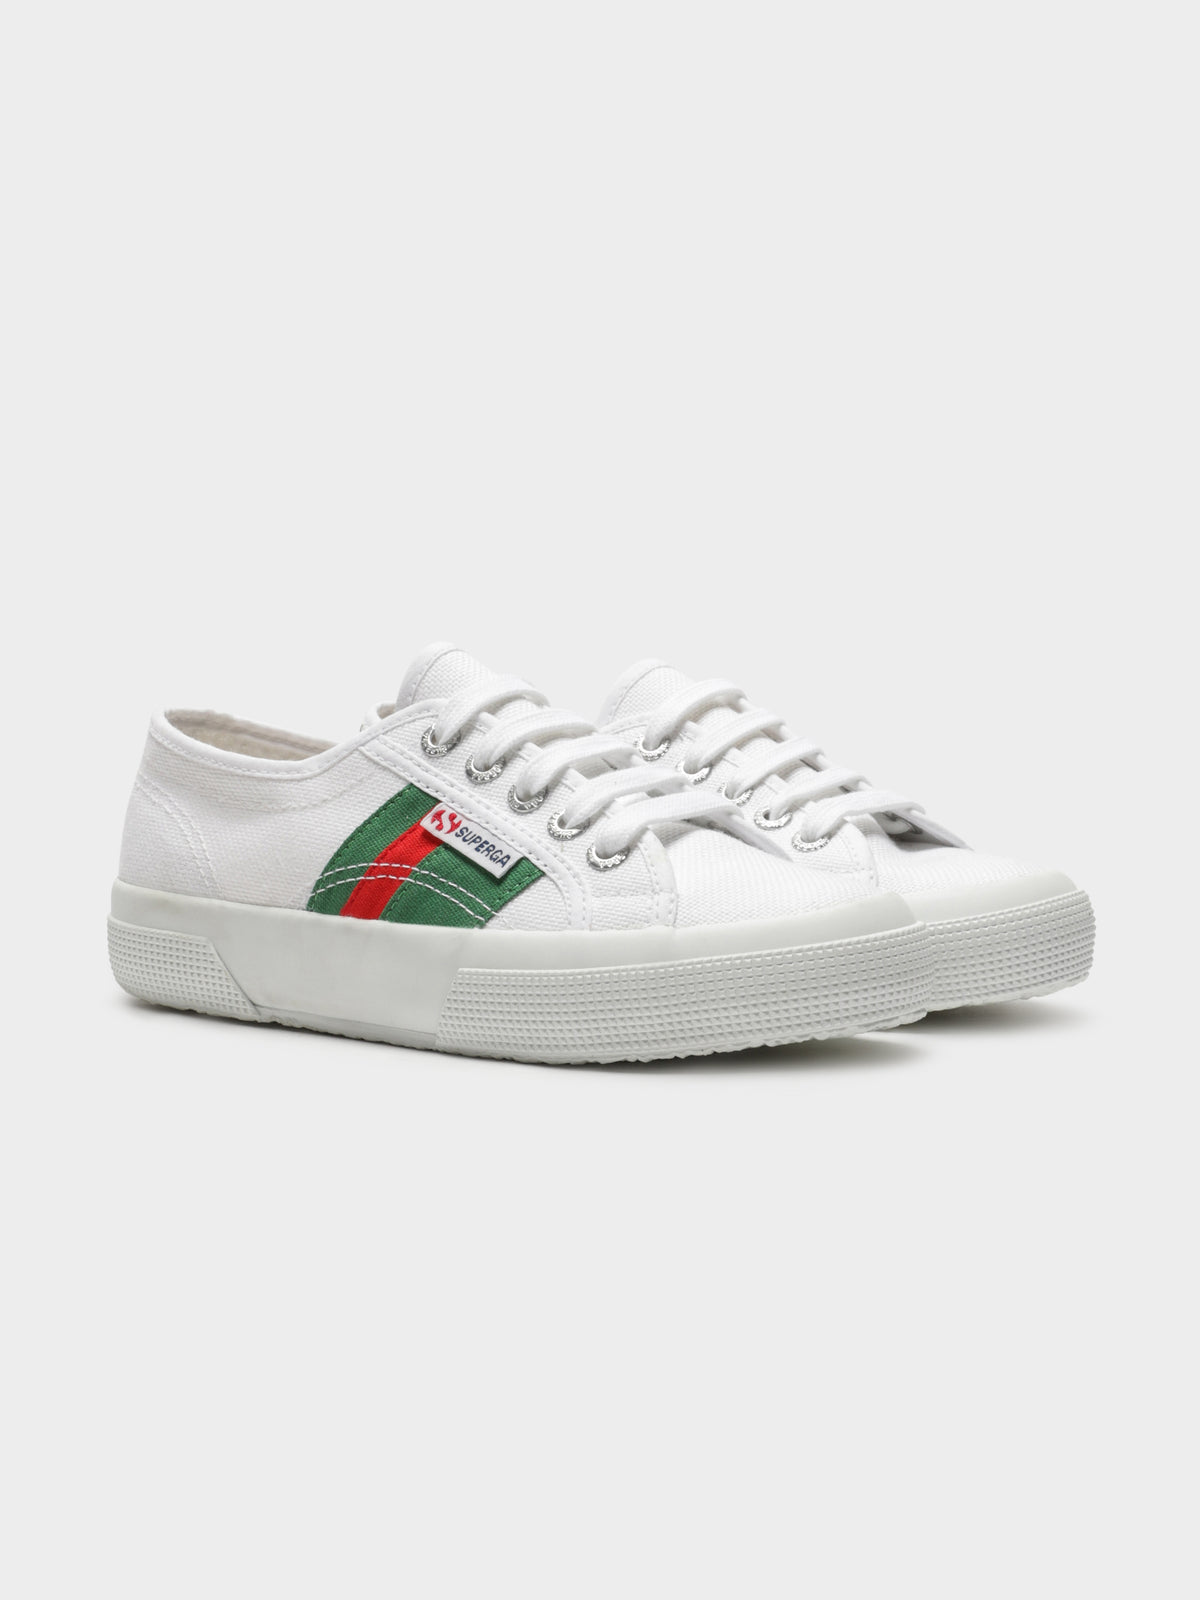 Womens 2750 Cotuflagside in White